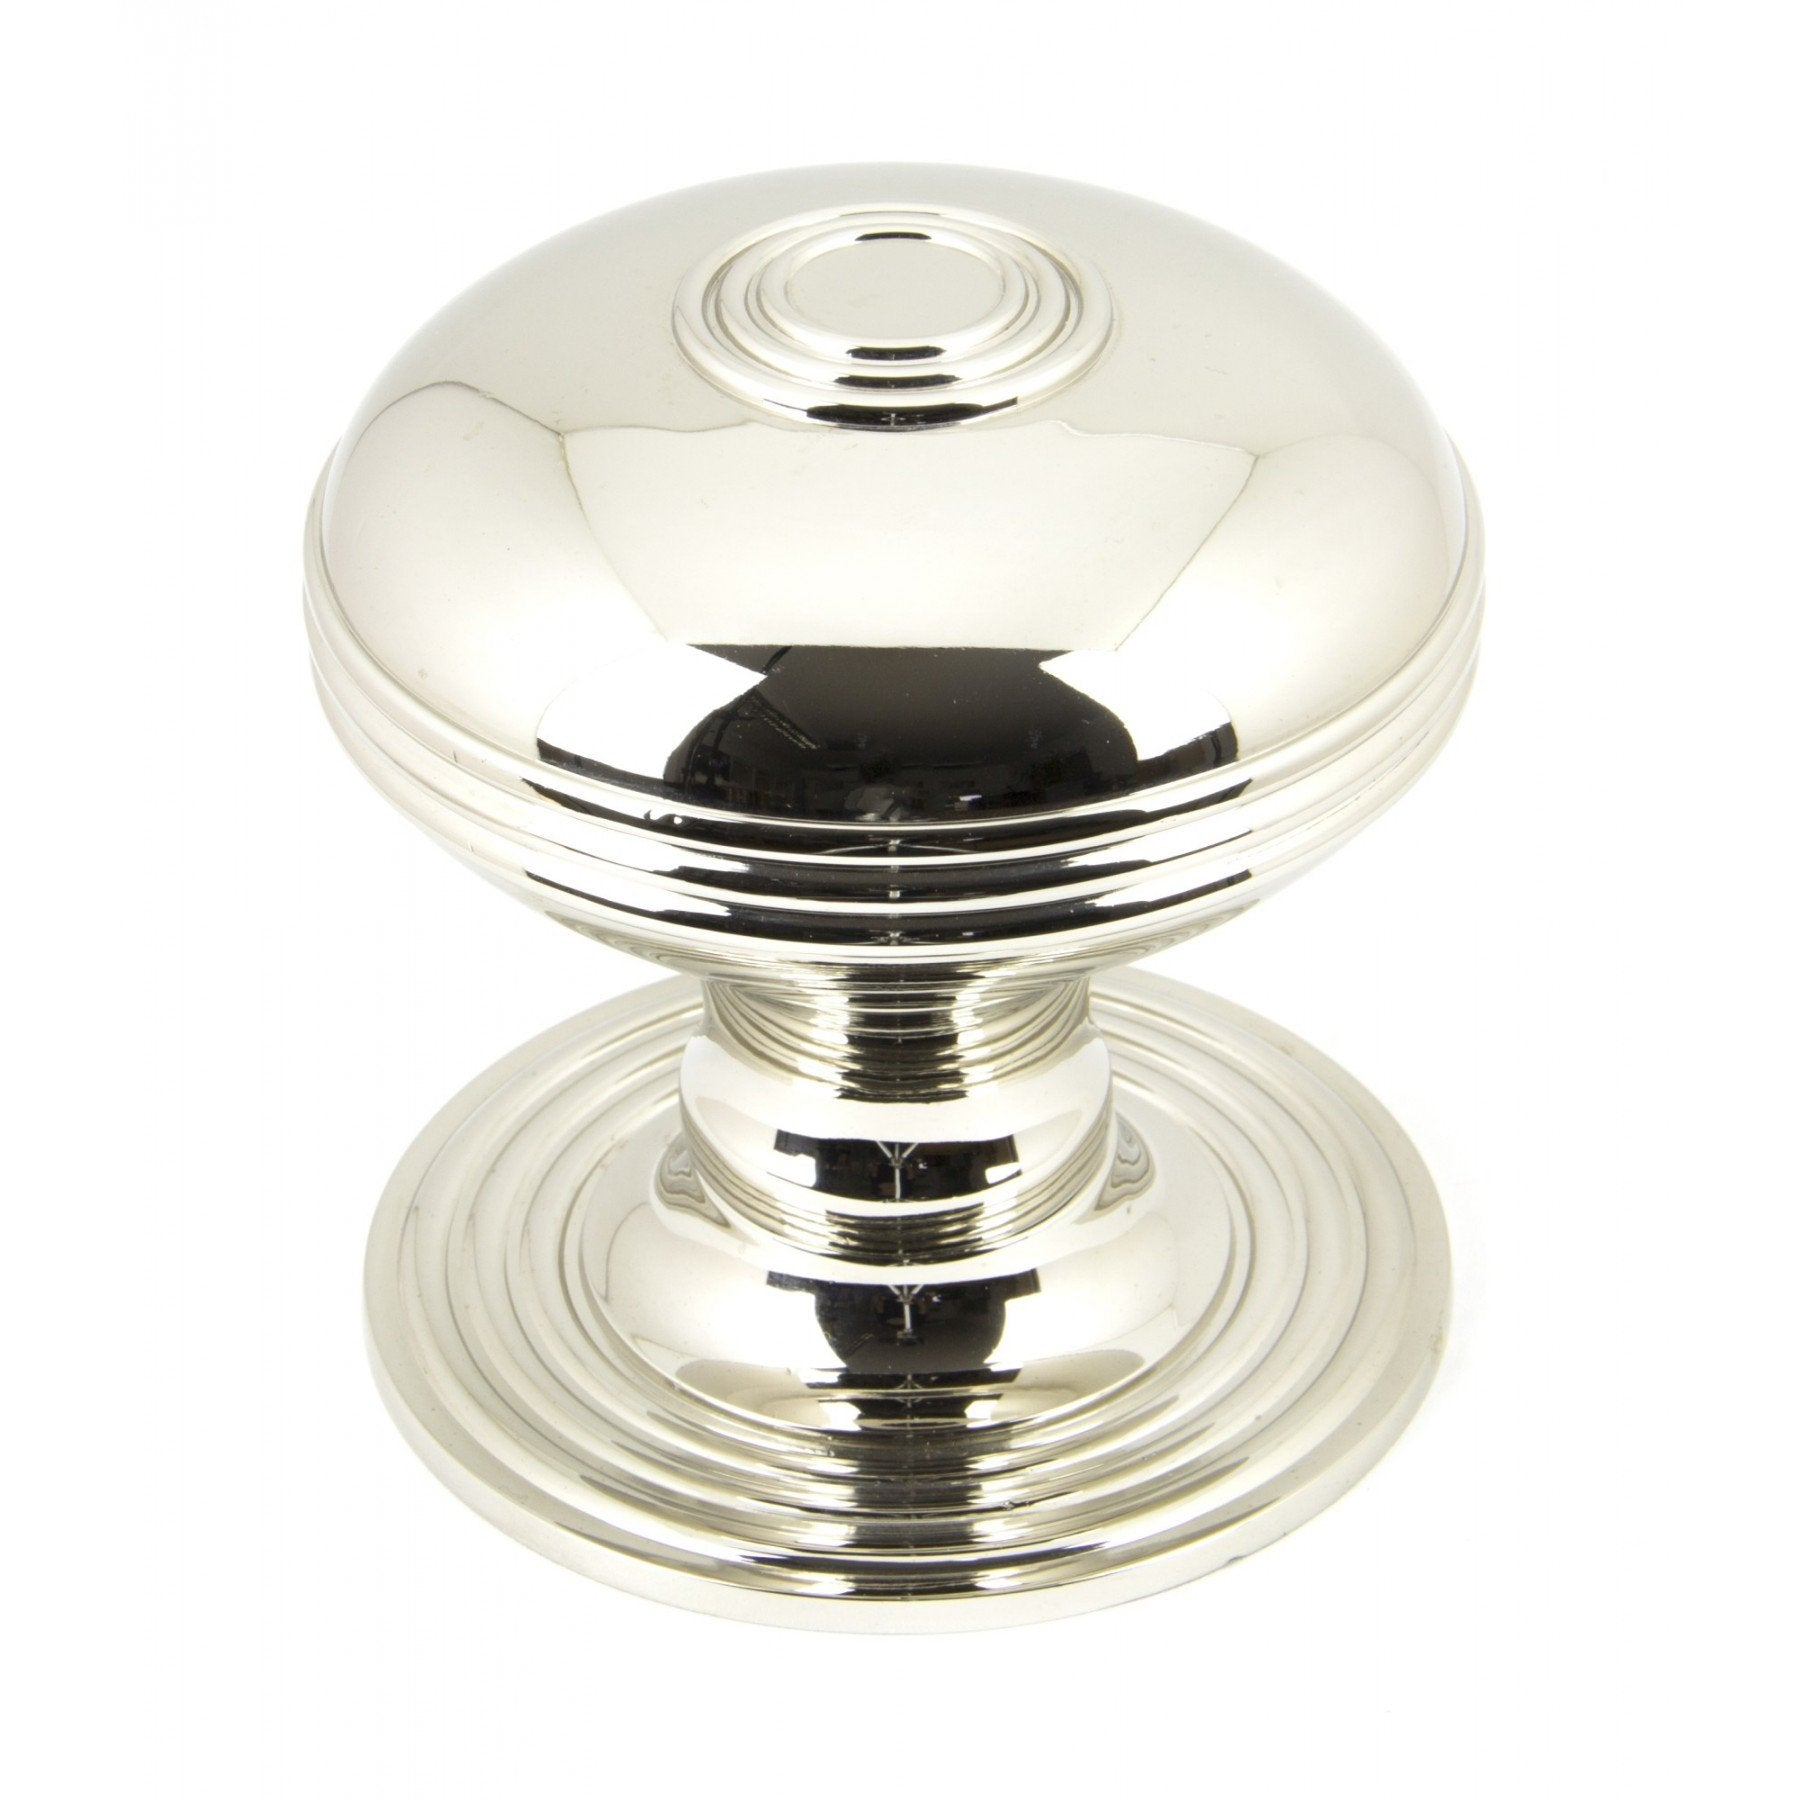 From the Anvil Polished Nickel Prestbury Centre Door Knob